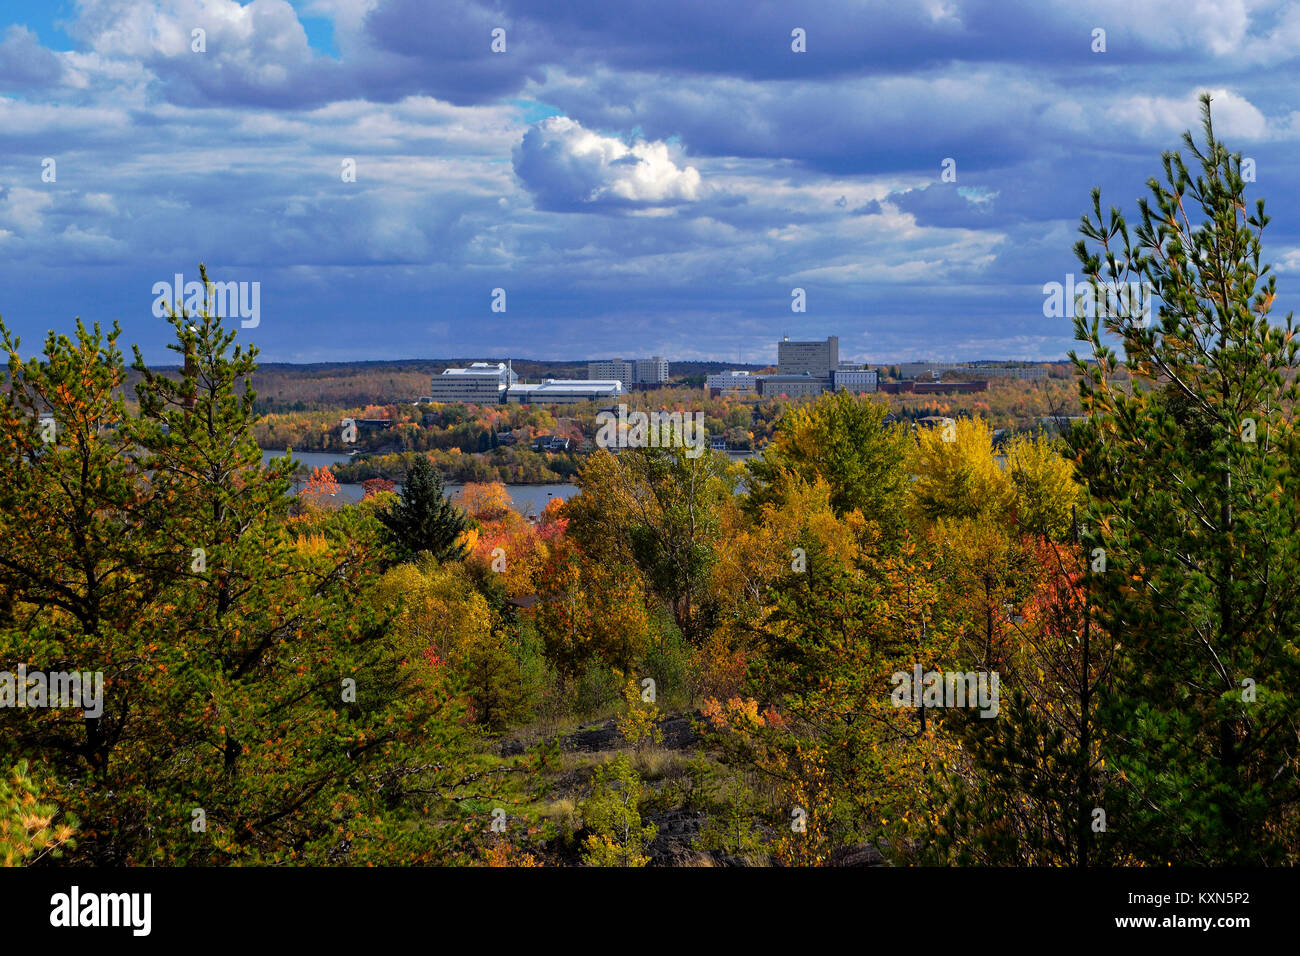 A spectacular view of Laurentian University from across Lake Ramsey - Stock Image